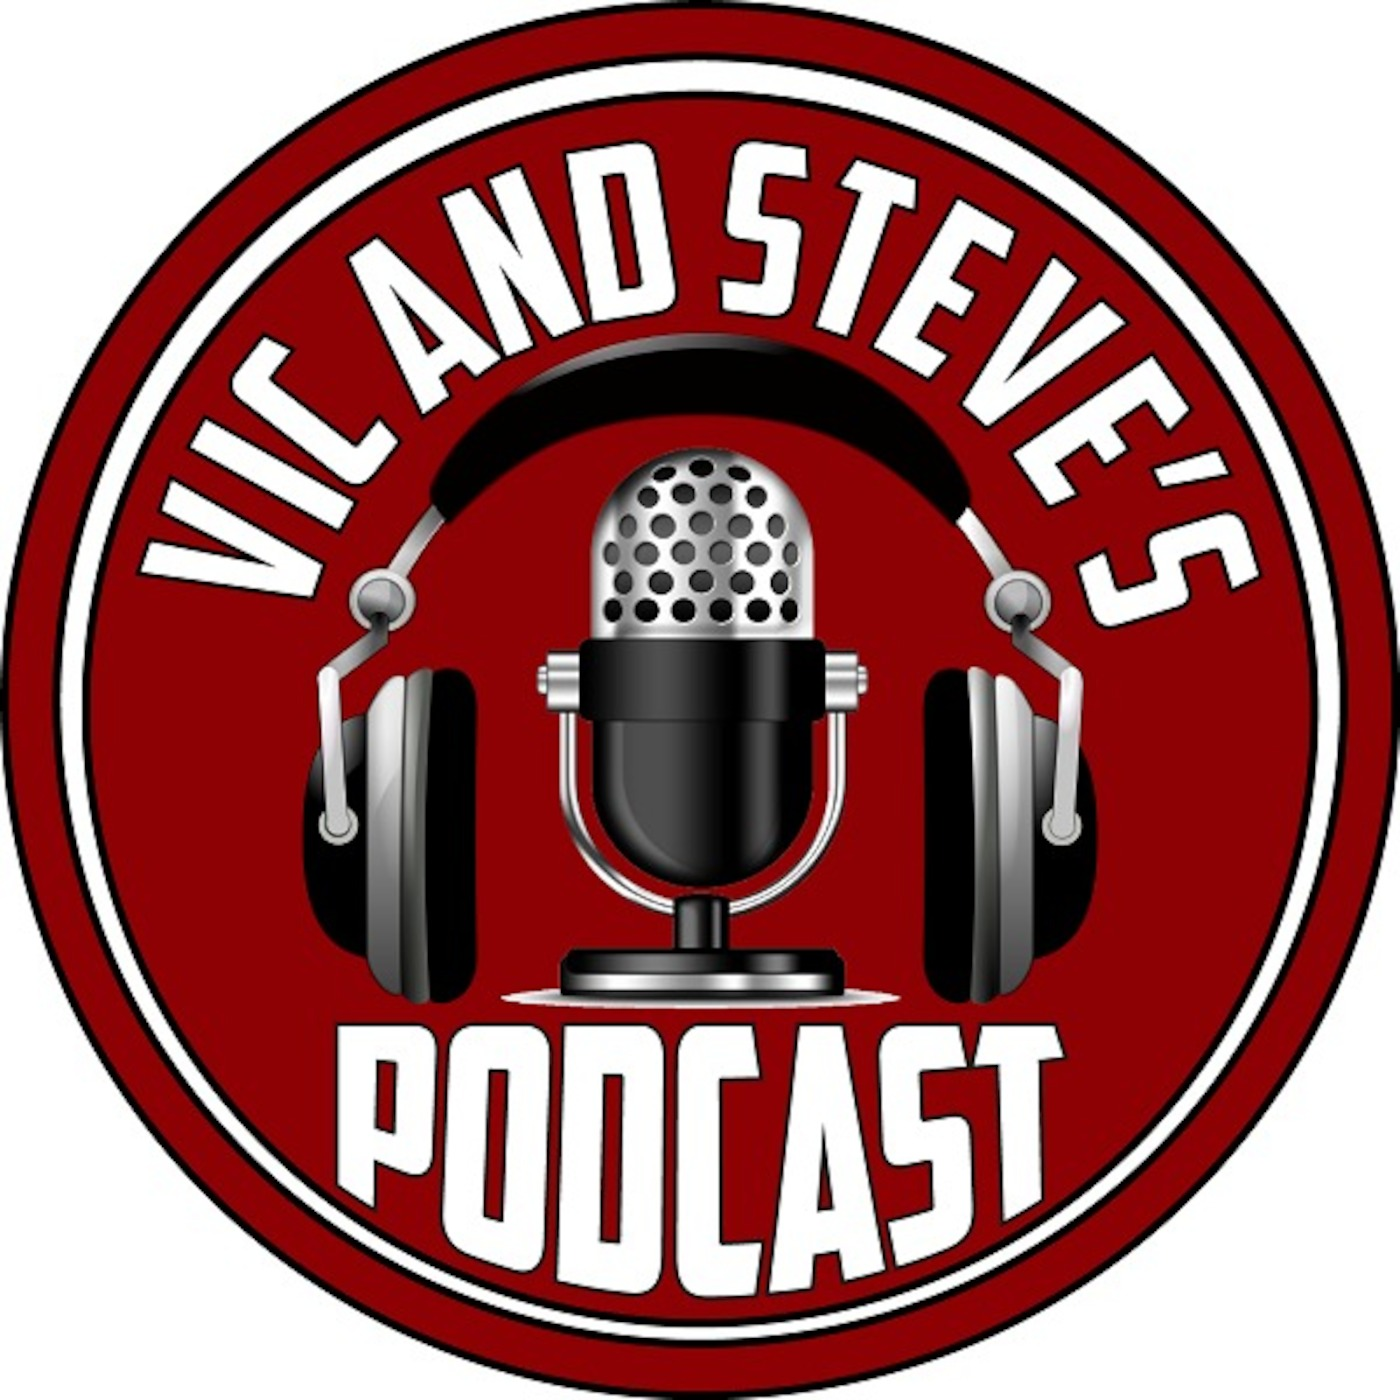 VIC AND STEVE'S PODCAST